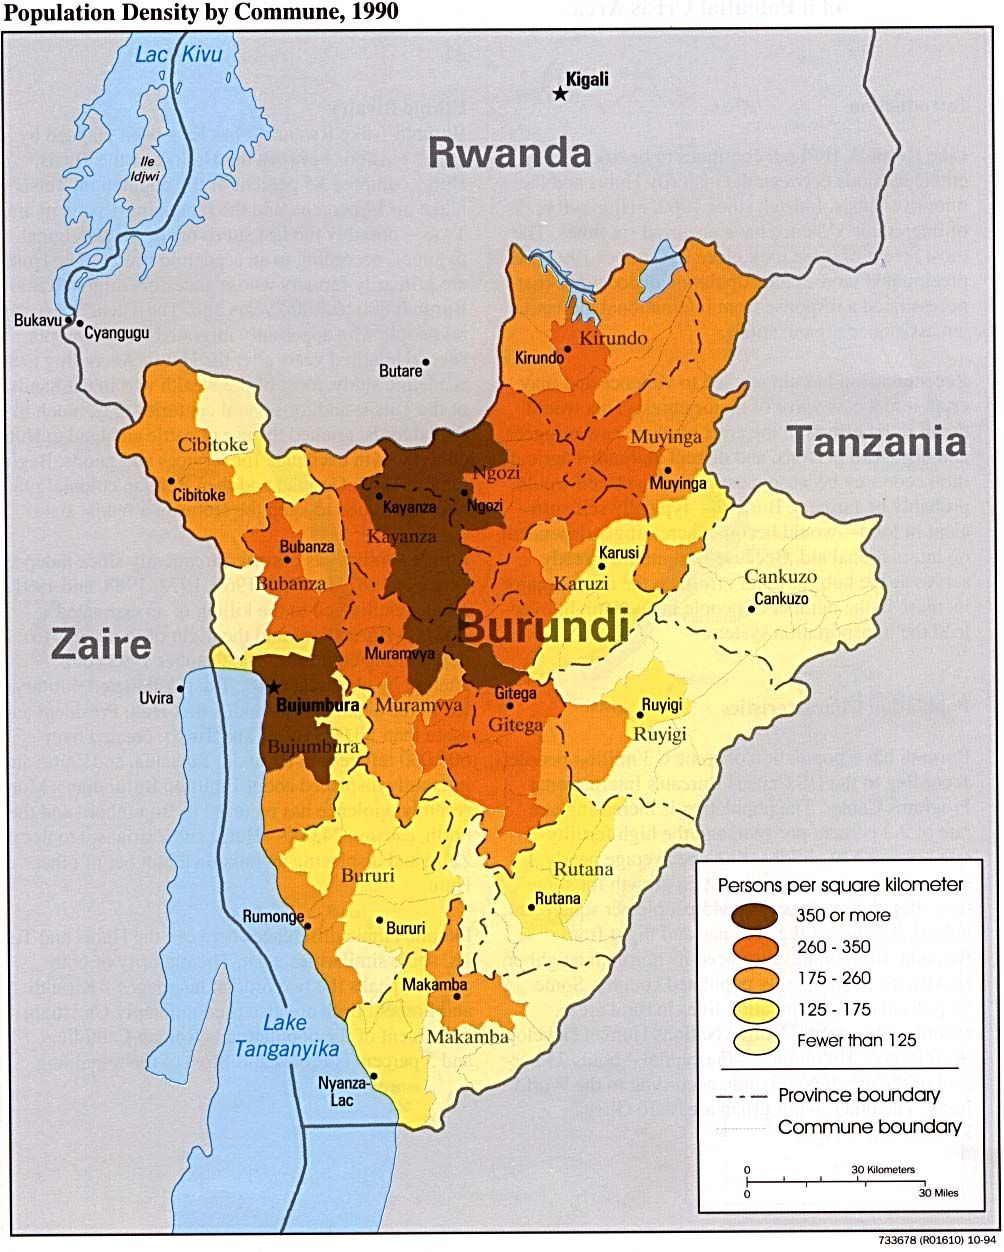 Lake Tanganyika On A Map Of Africa.Population Density Of Burundi History Maps Pinterest